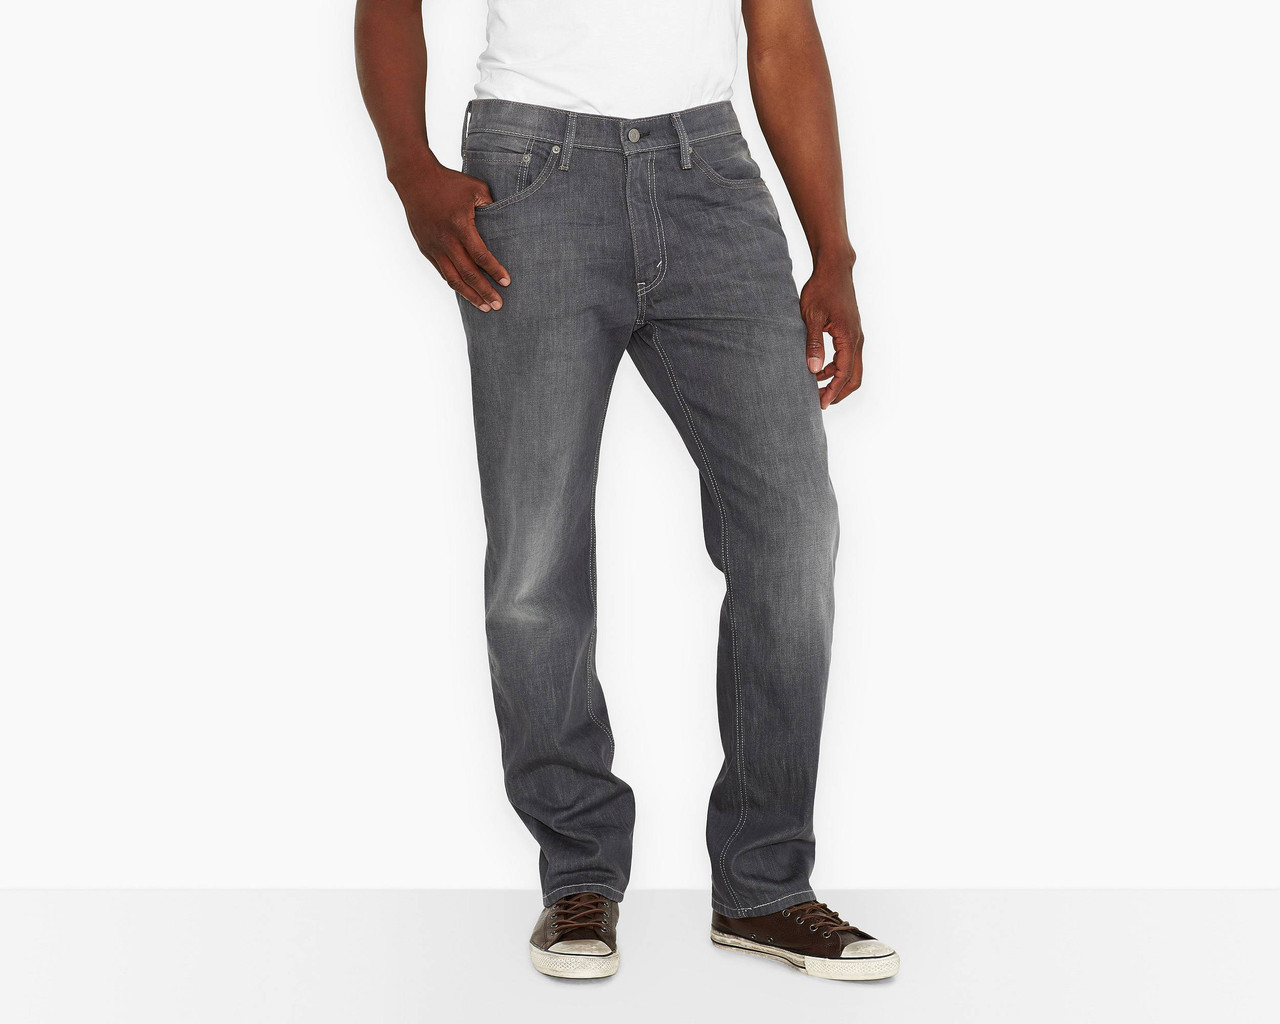 Джинсы Levi's 541 Athletic Fit, King's Canyon, 33W34L, 181810021